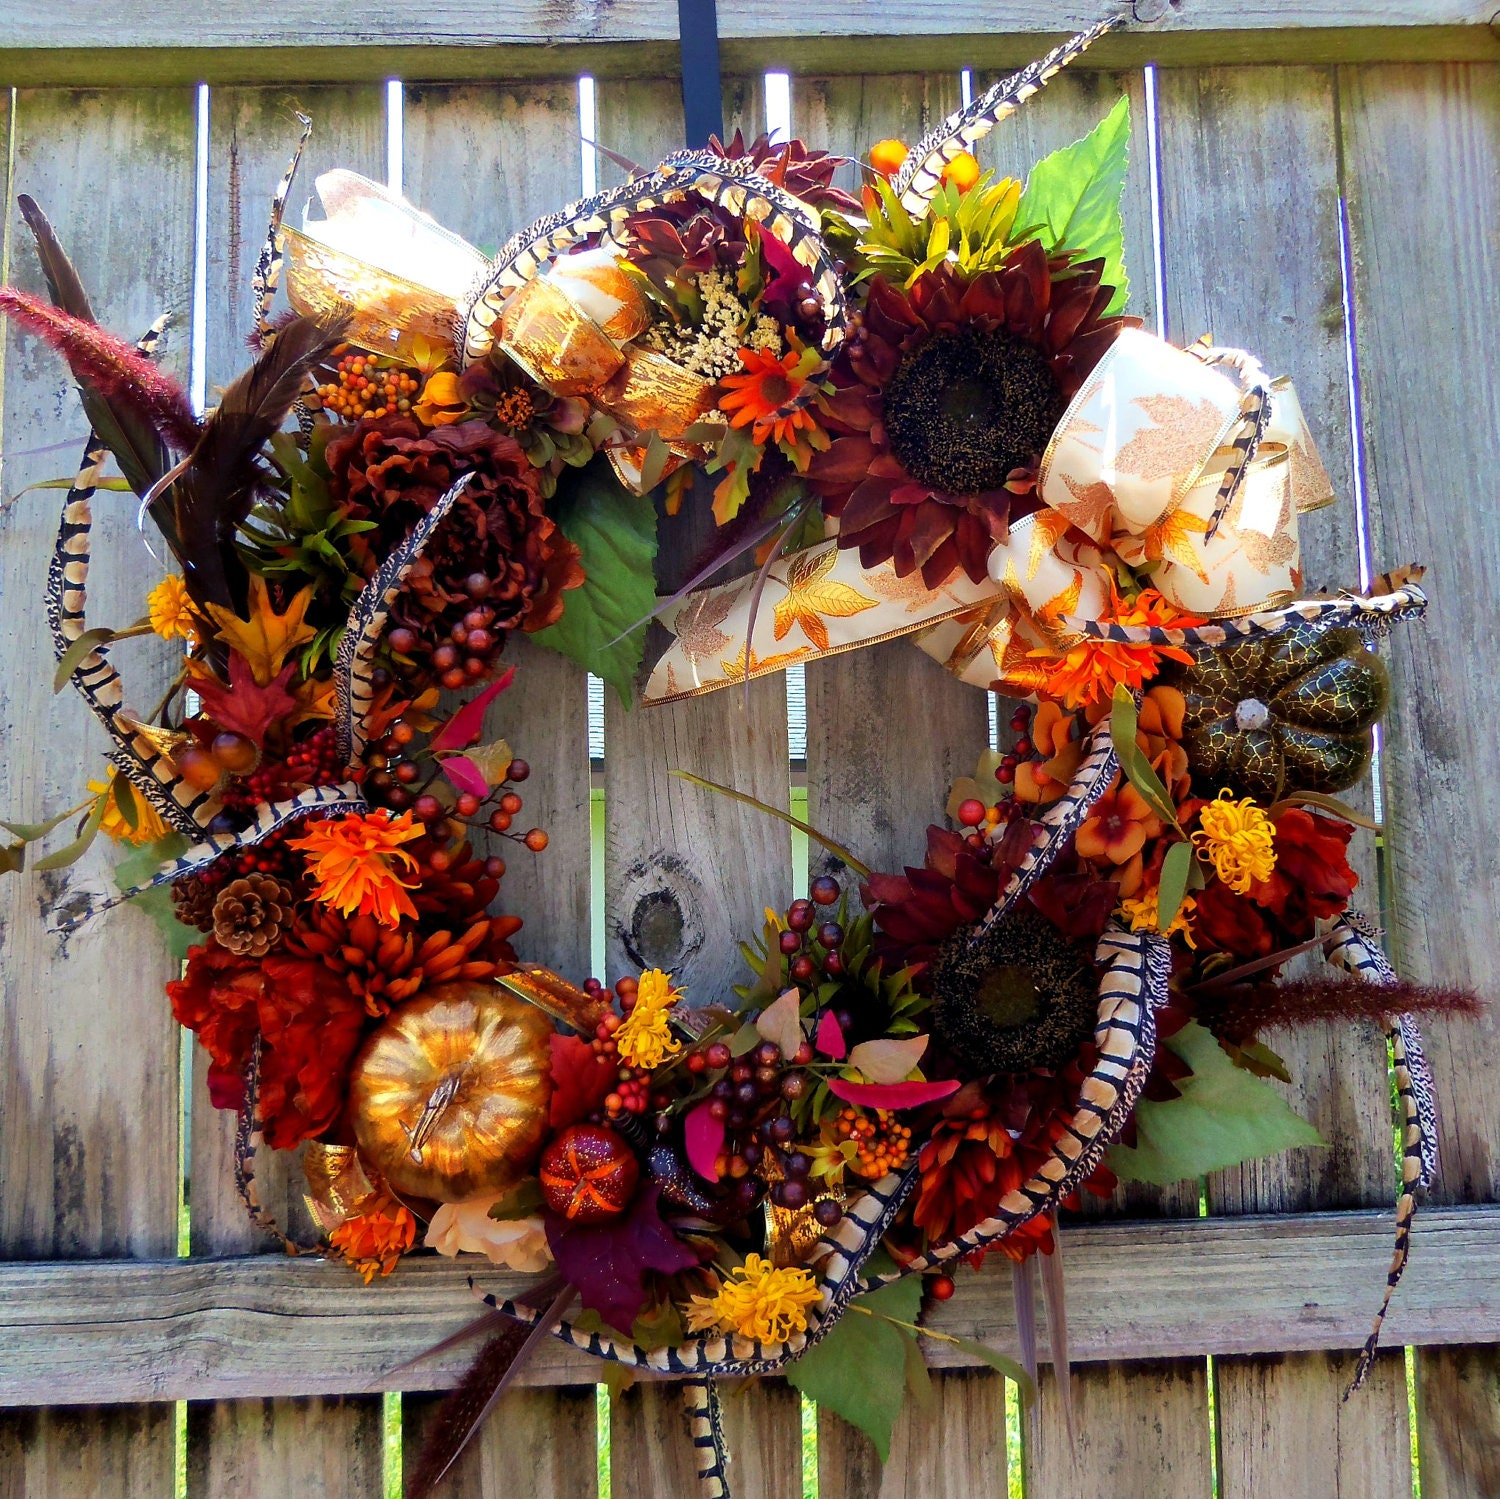 Front Door Wreath Fall Wreath Autumn Wreath Sunflowers Gourds: fall autumn door wreaths